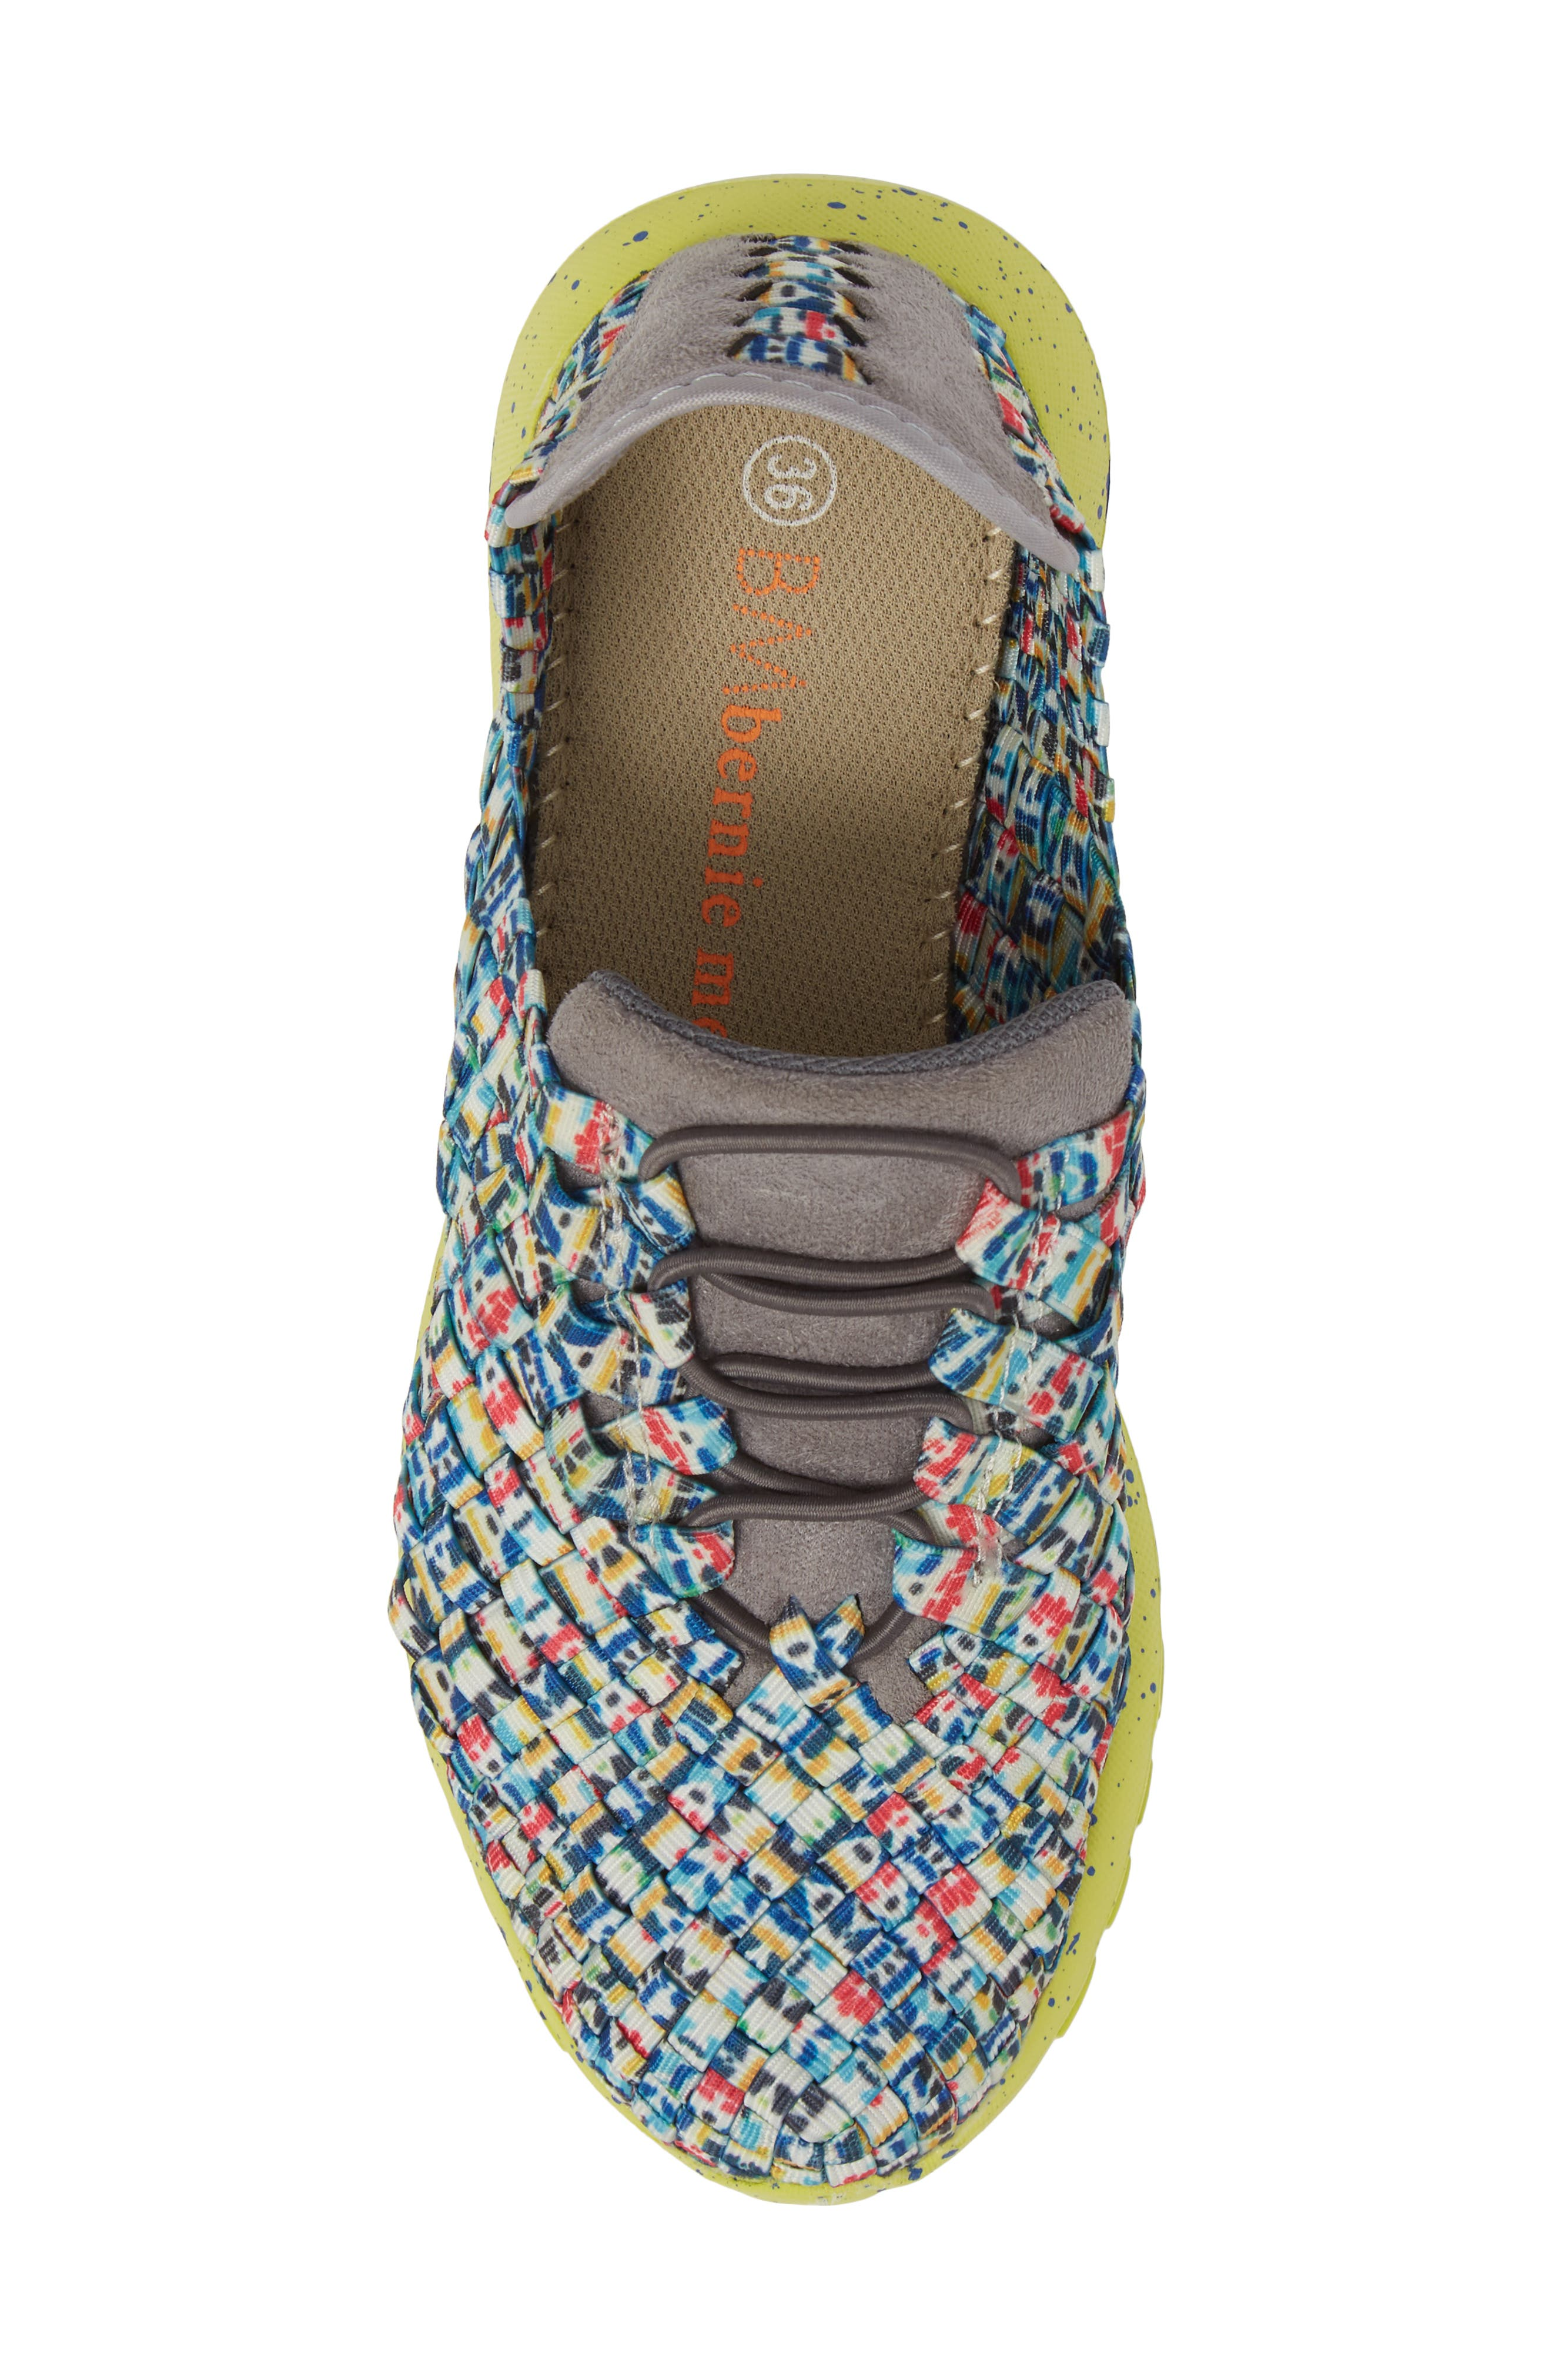 Runners Victoria Sneaker,                             Alternate thumbnail 5, color,                             Pixel Fabric